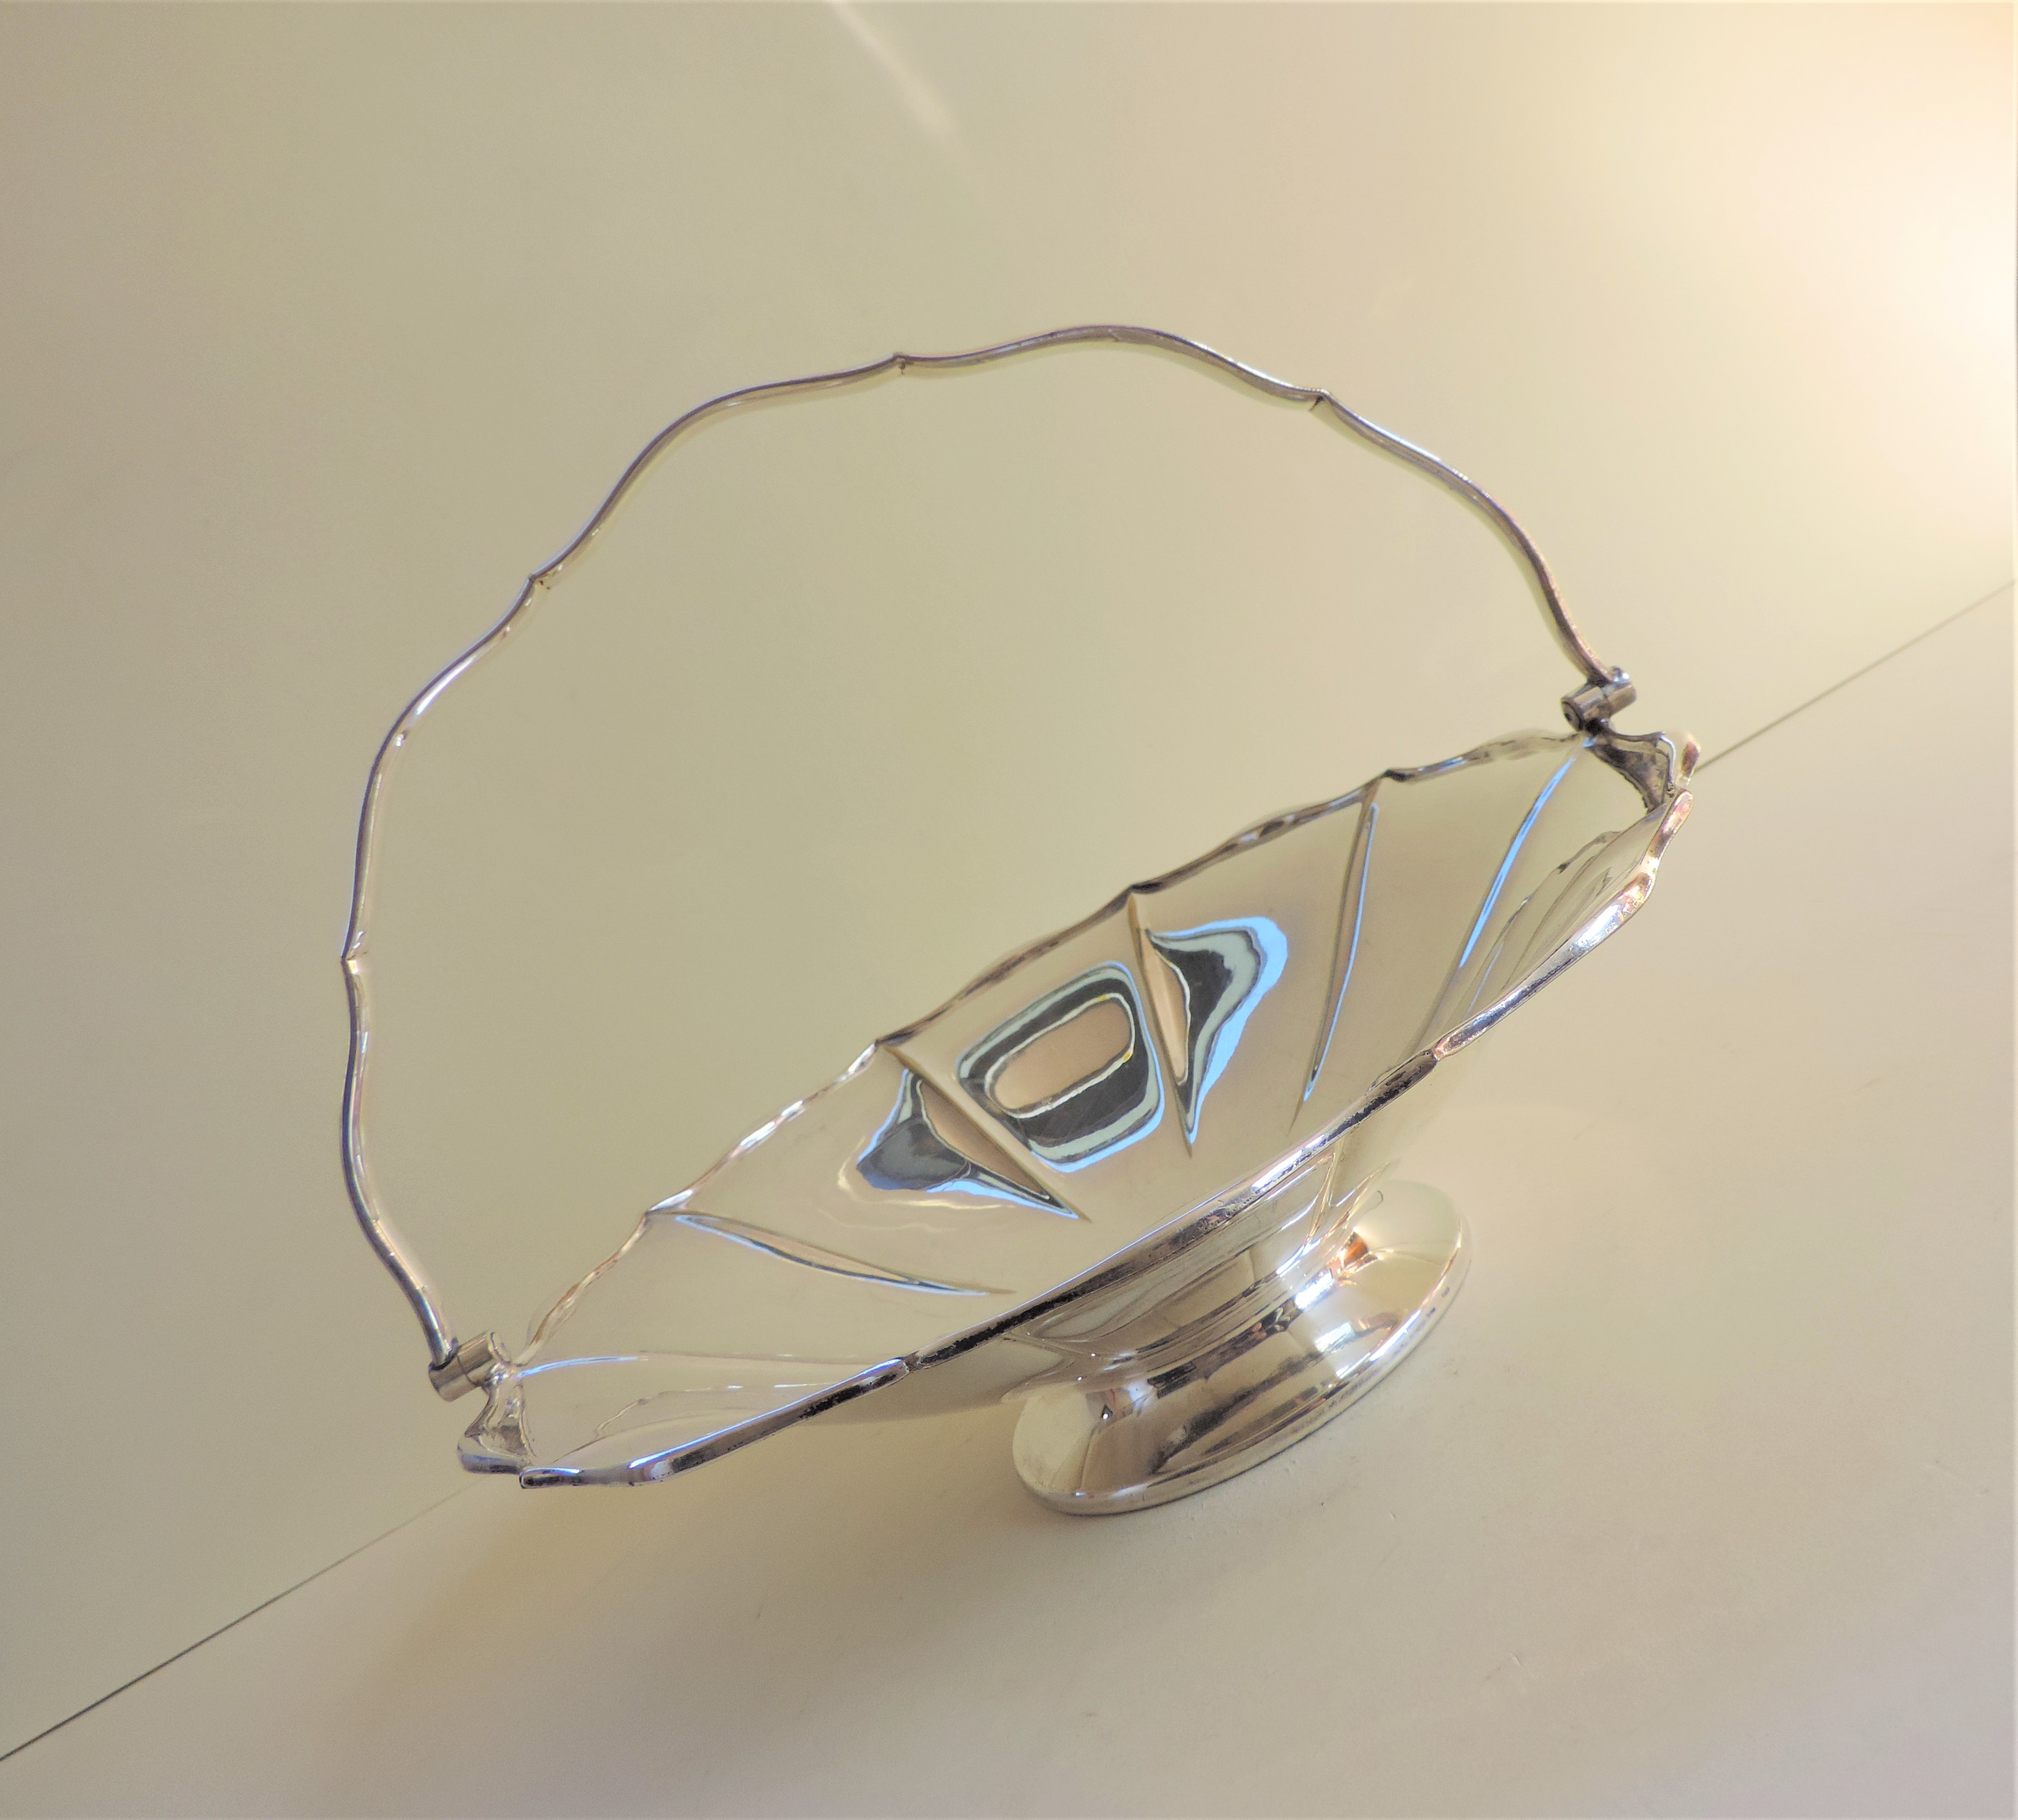 Antique Art Nouveau Mappin & Webb Silver Plated Cake/Bread Basket - Image 3 of 5